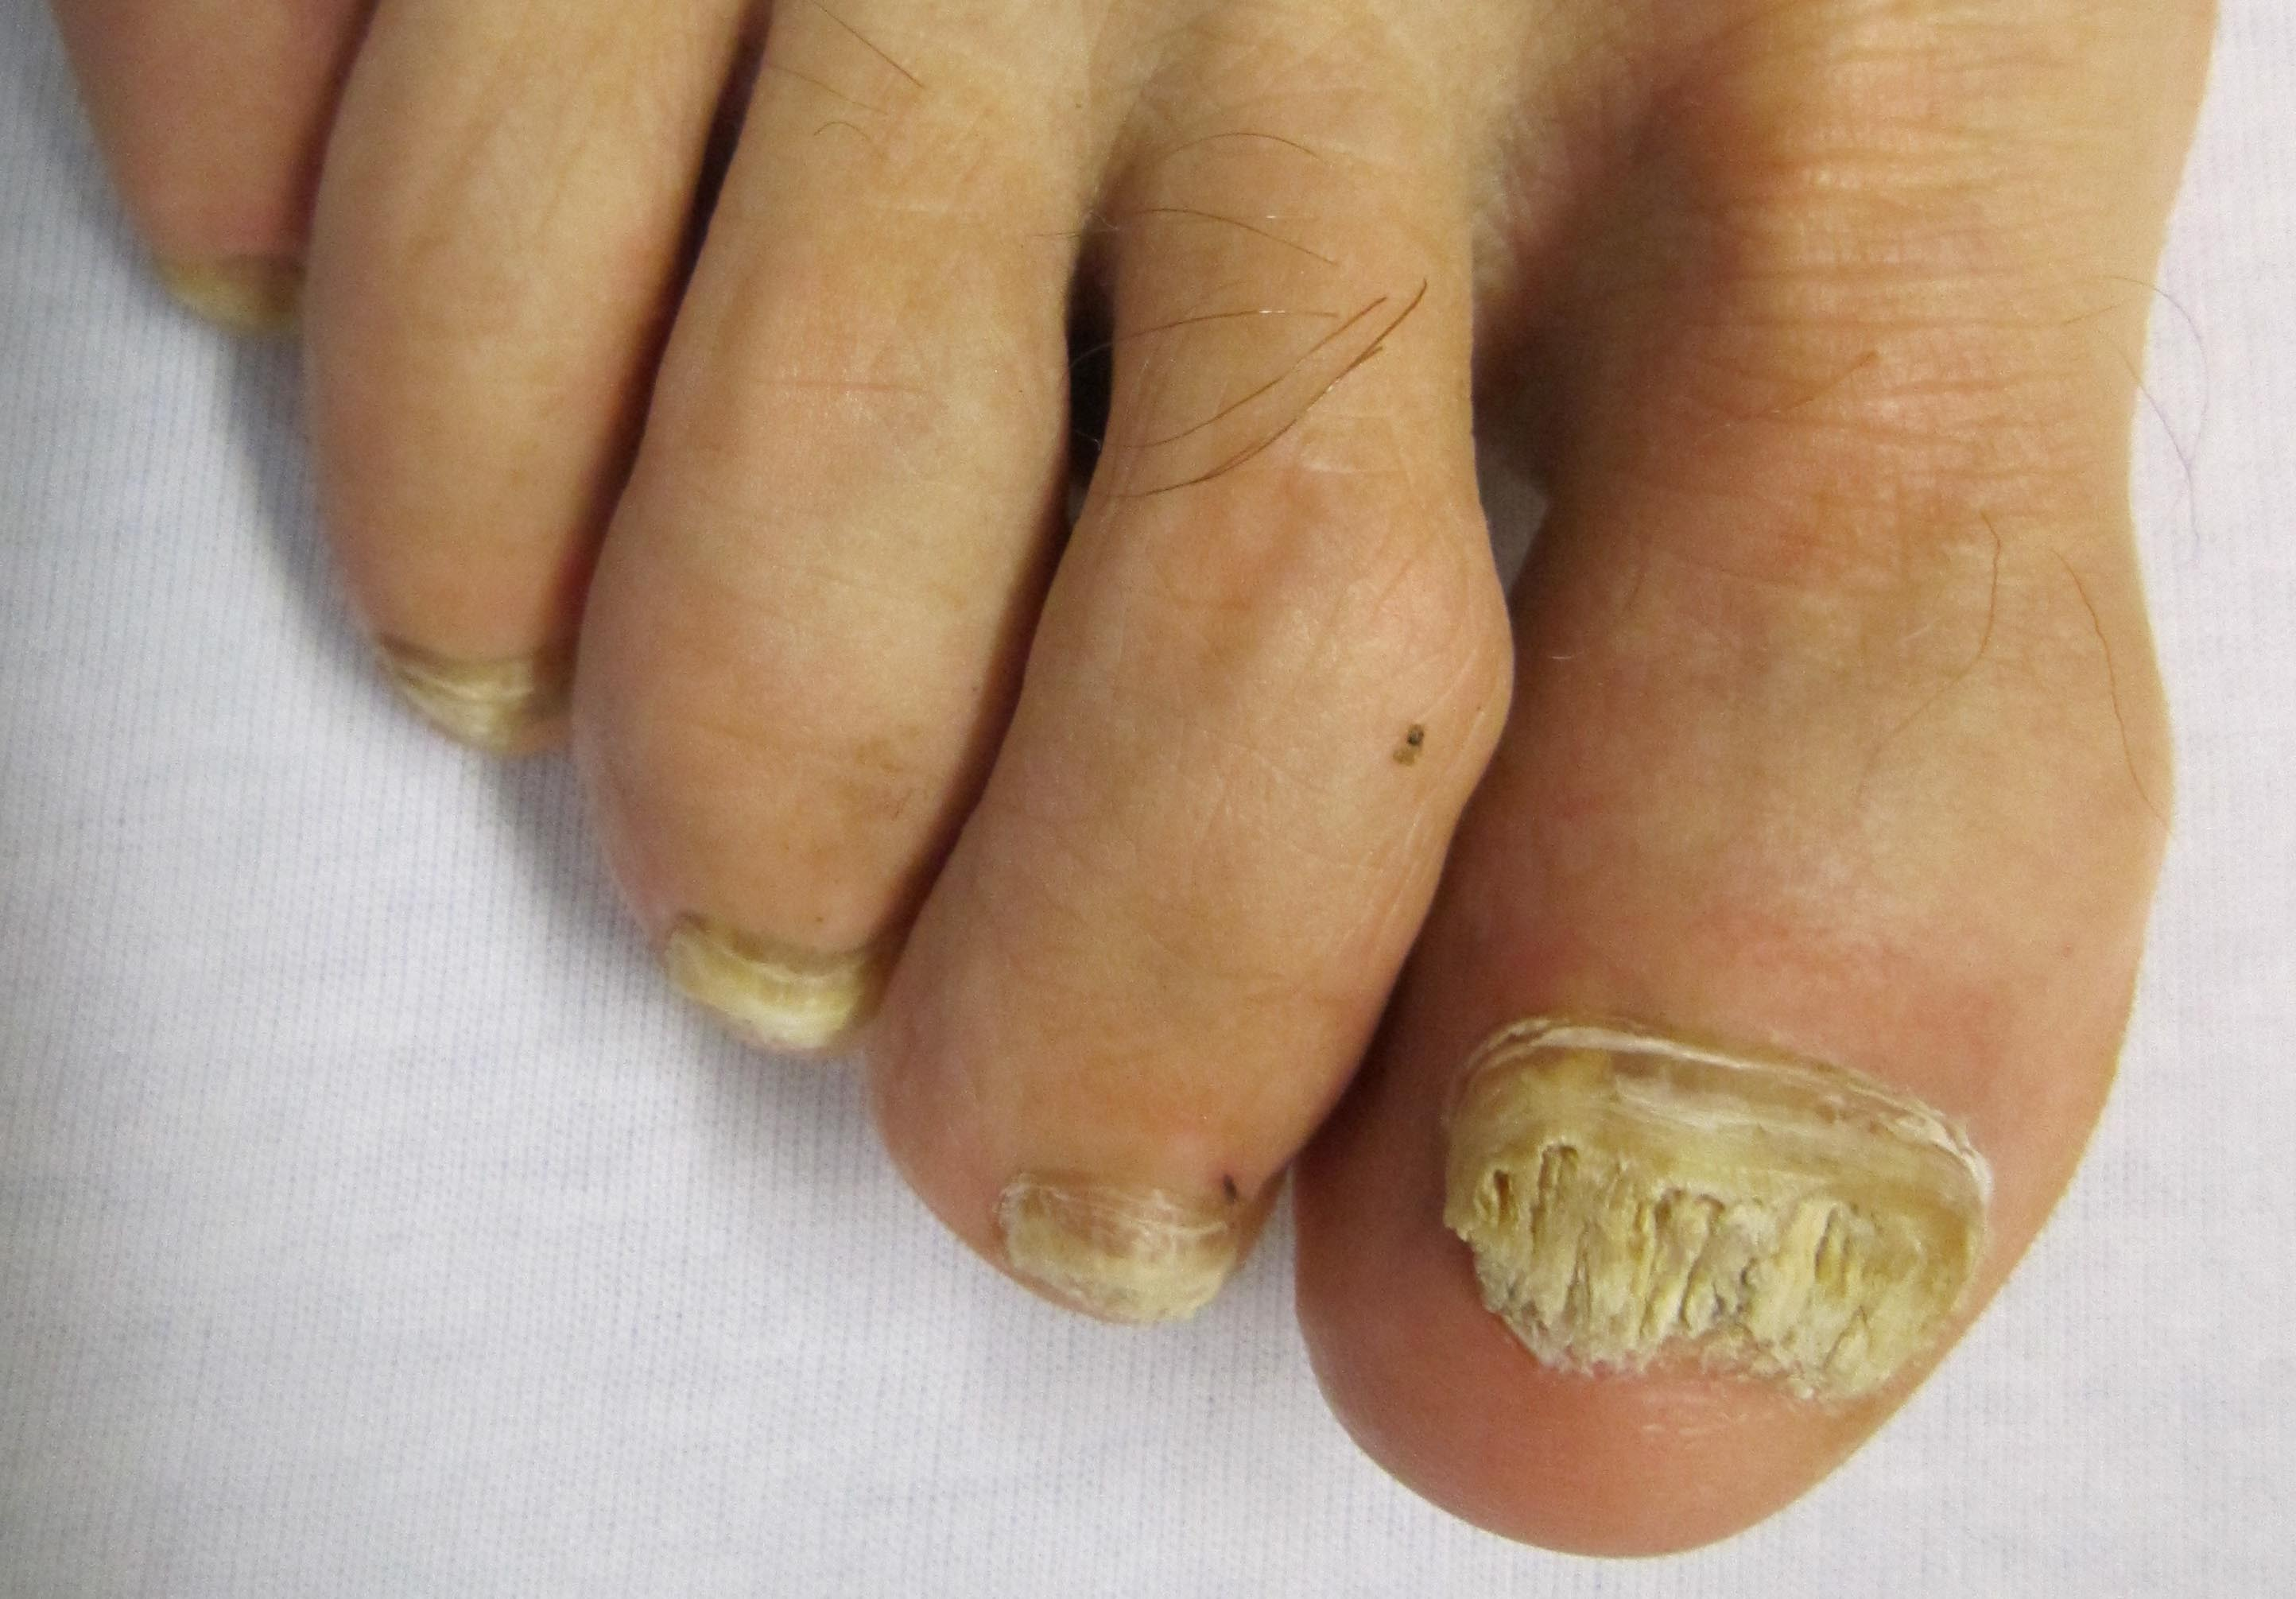 Fungal nails - thick yellow ugly toenails - Bruyere Foot Specialists